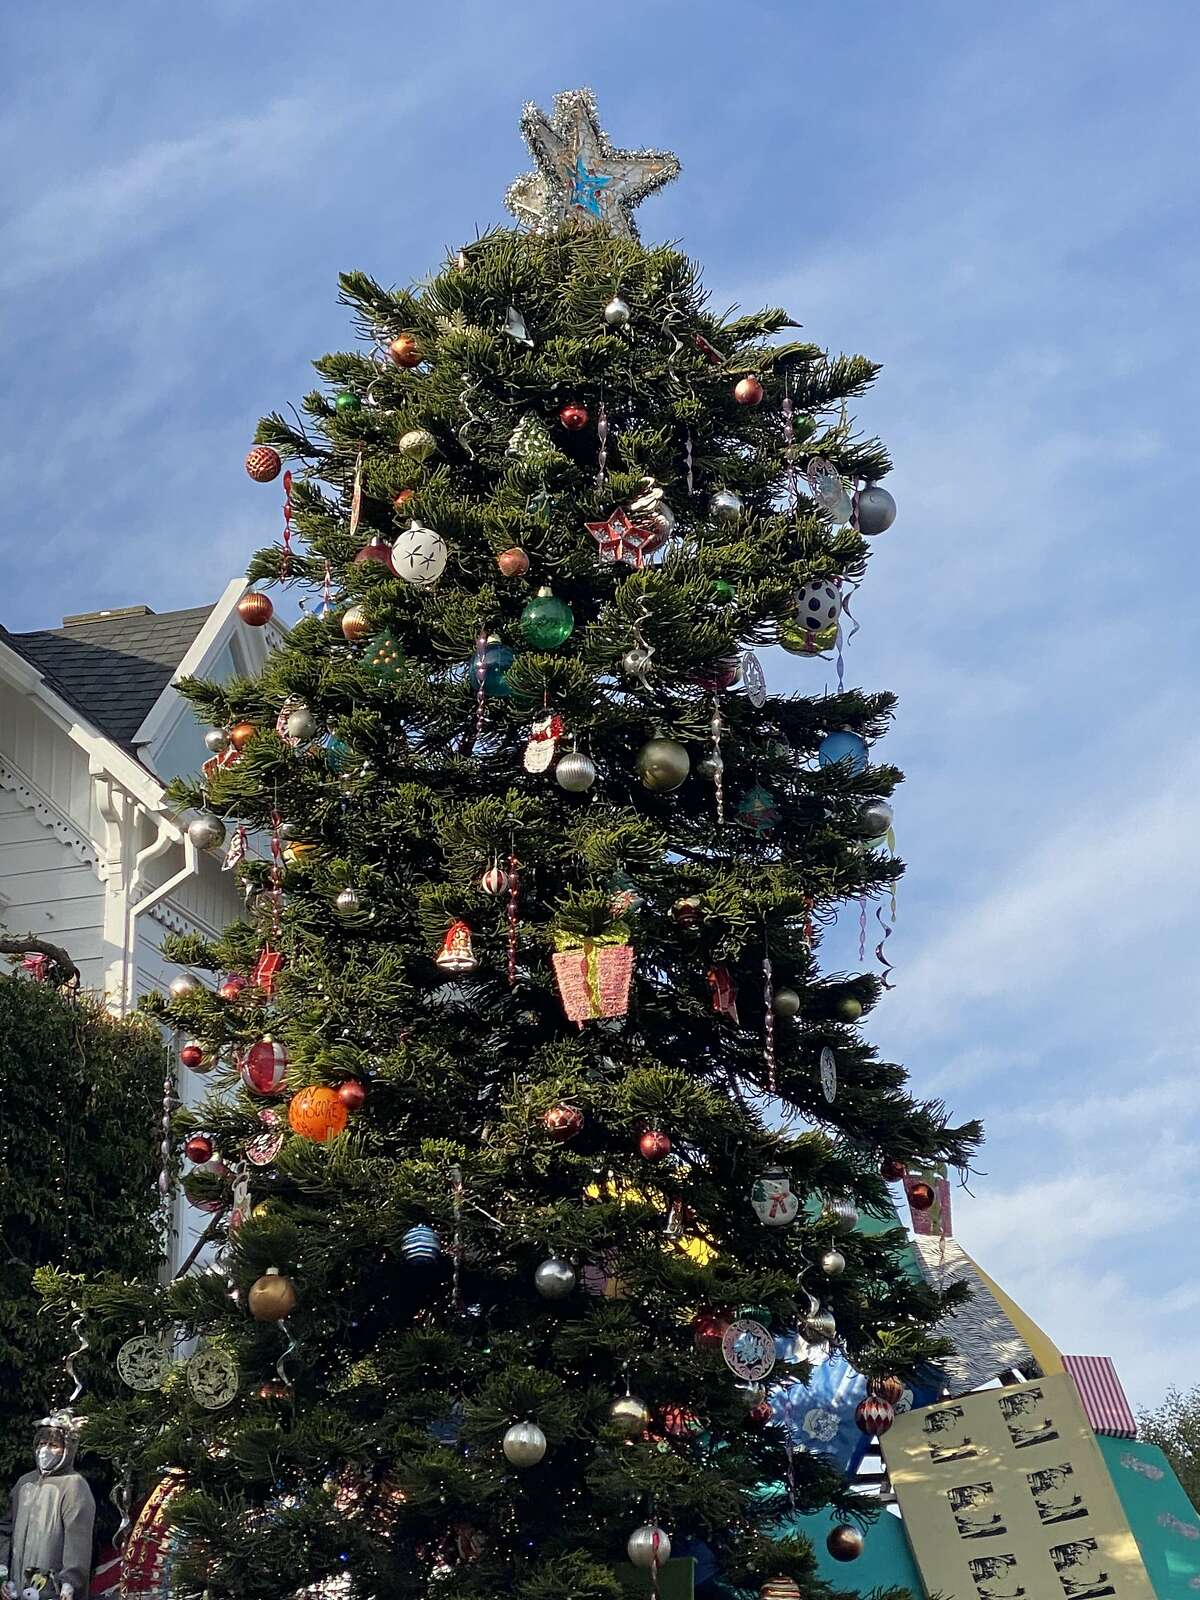 Tom and Jerry's Christmas tree in San Francisco is back, for the first time without Tom.